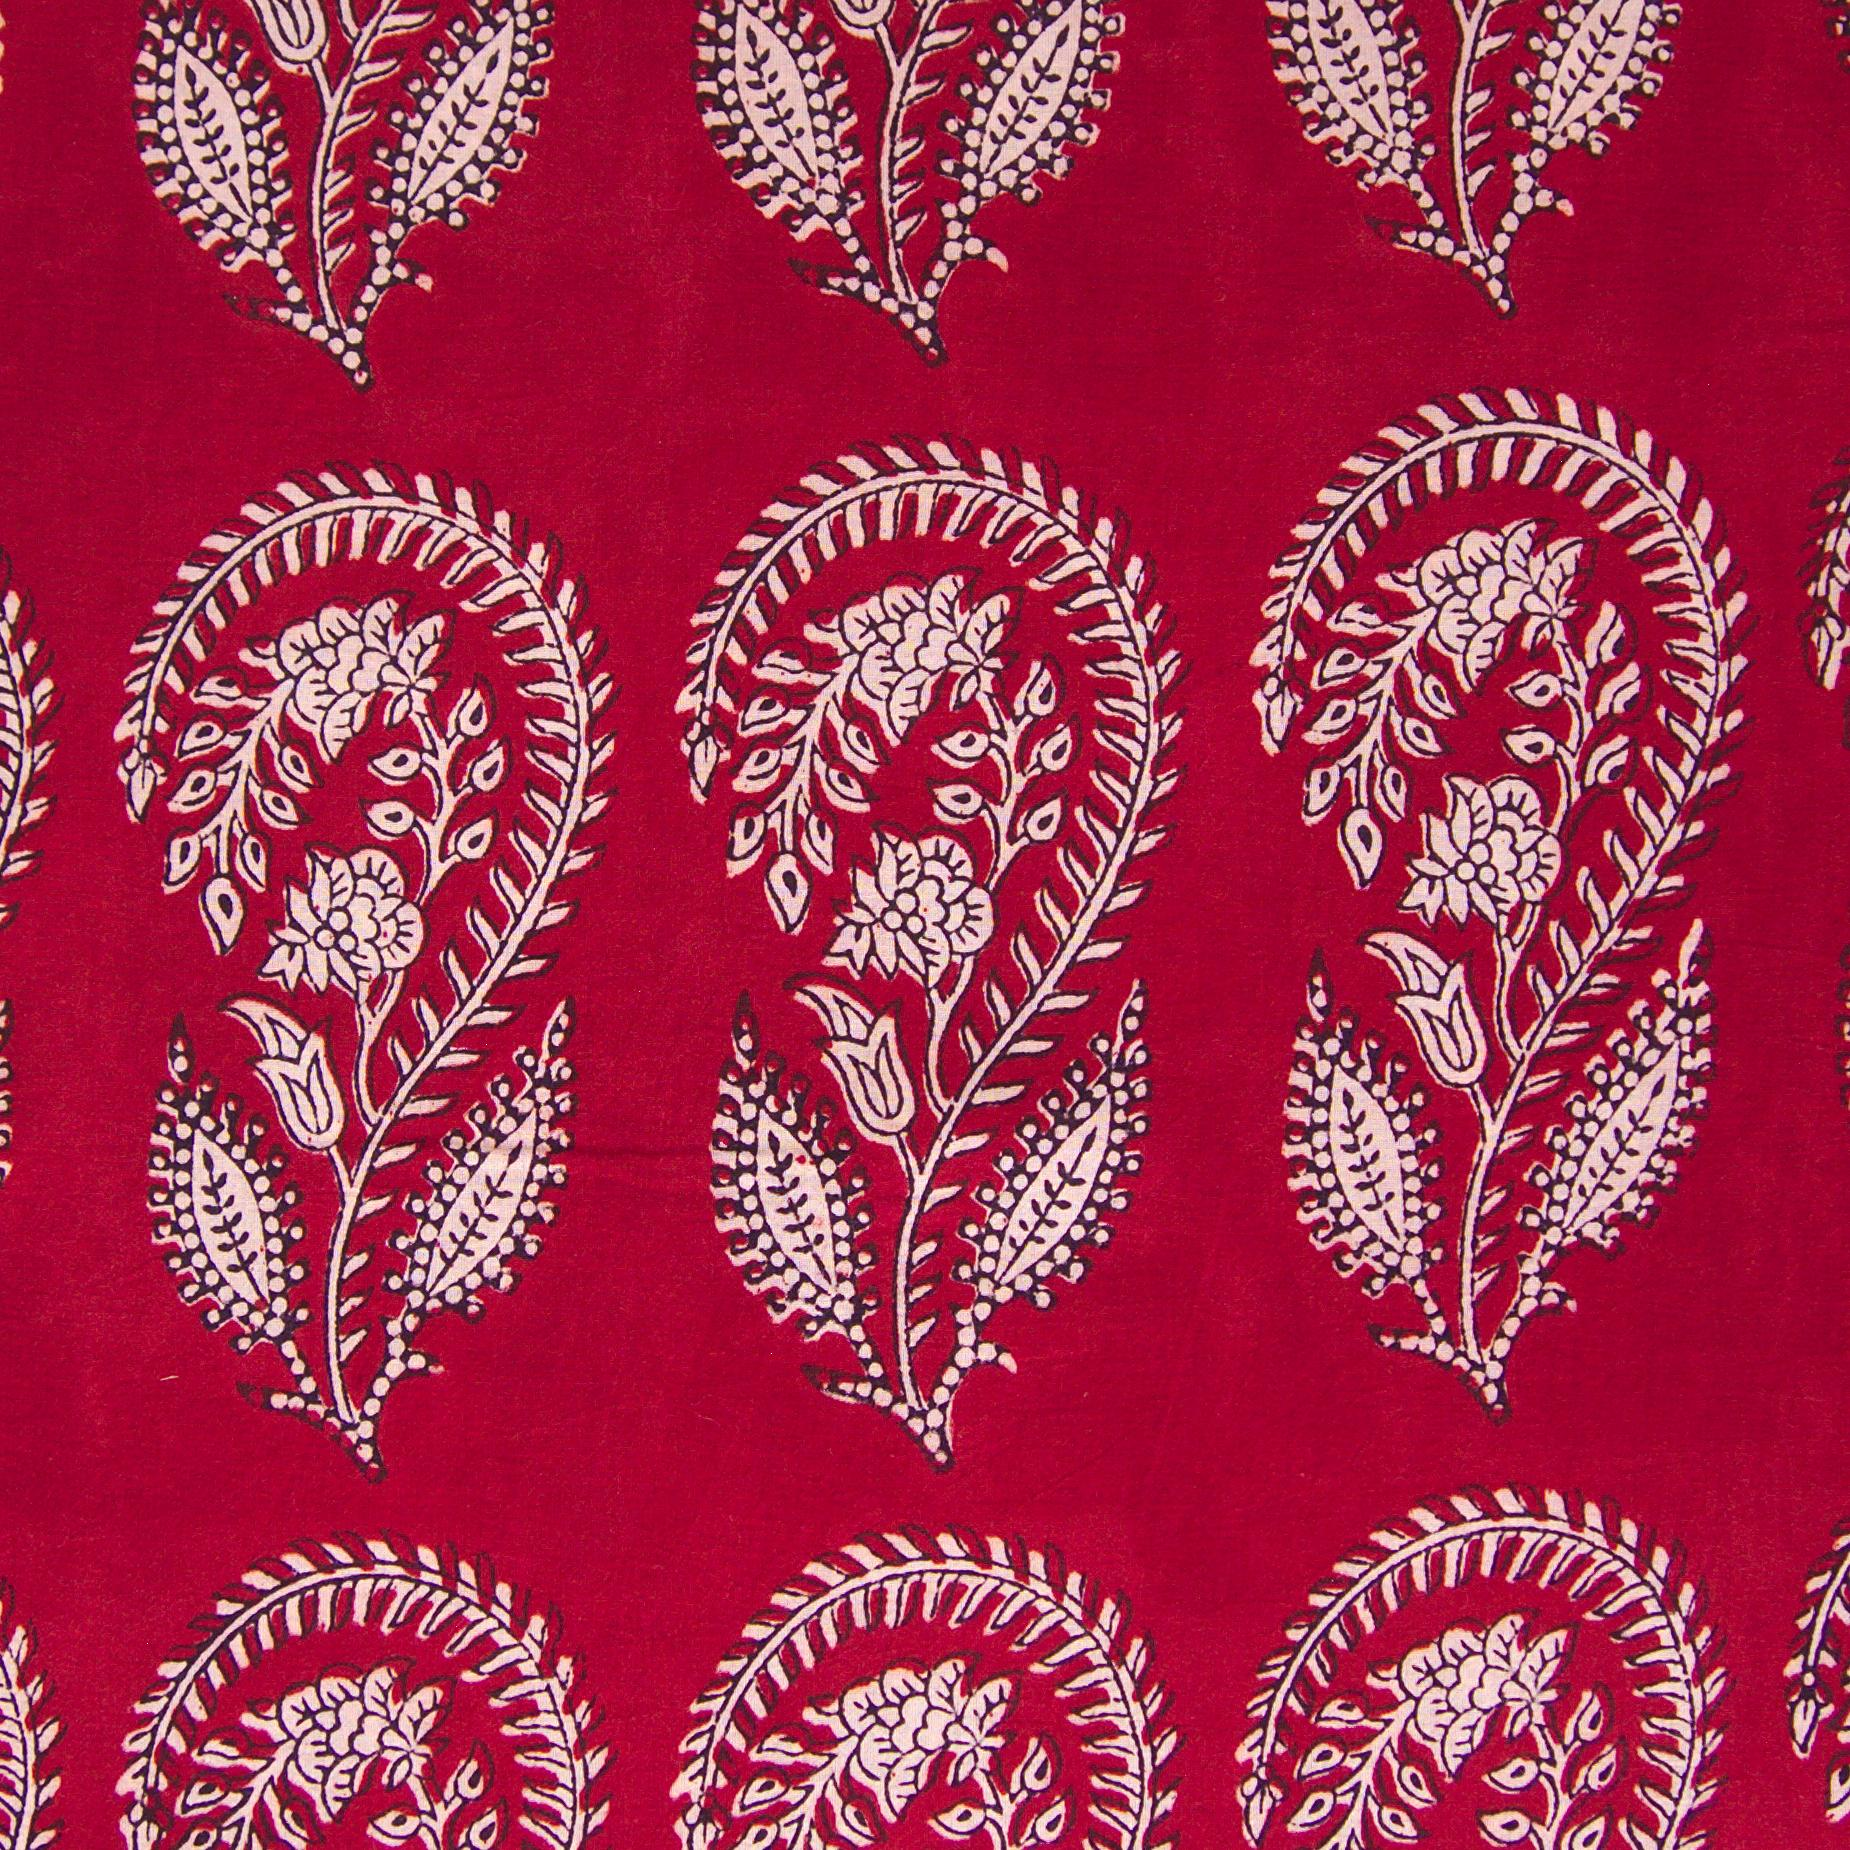 100% Block - Printed Cotton Fabric From India - Scorpion Design - Iron Rust Black & Alizarin Red Dyes - Flat - Live